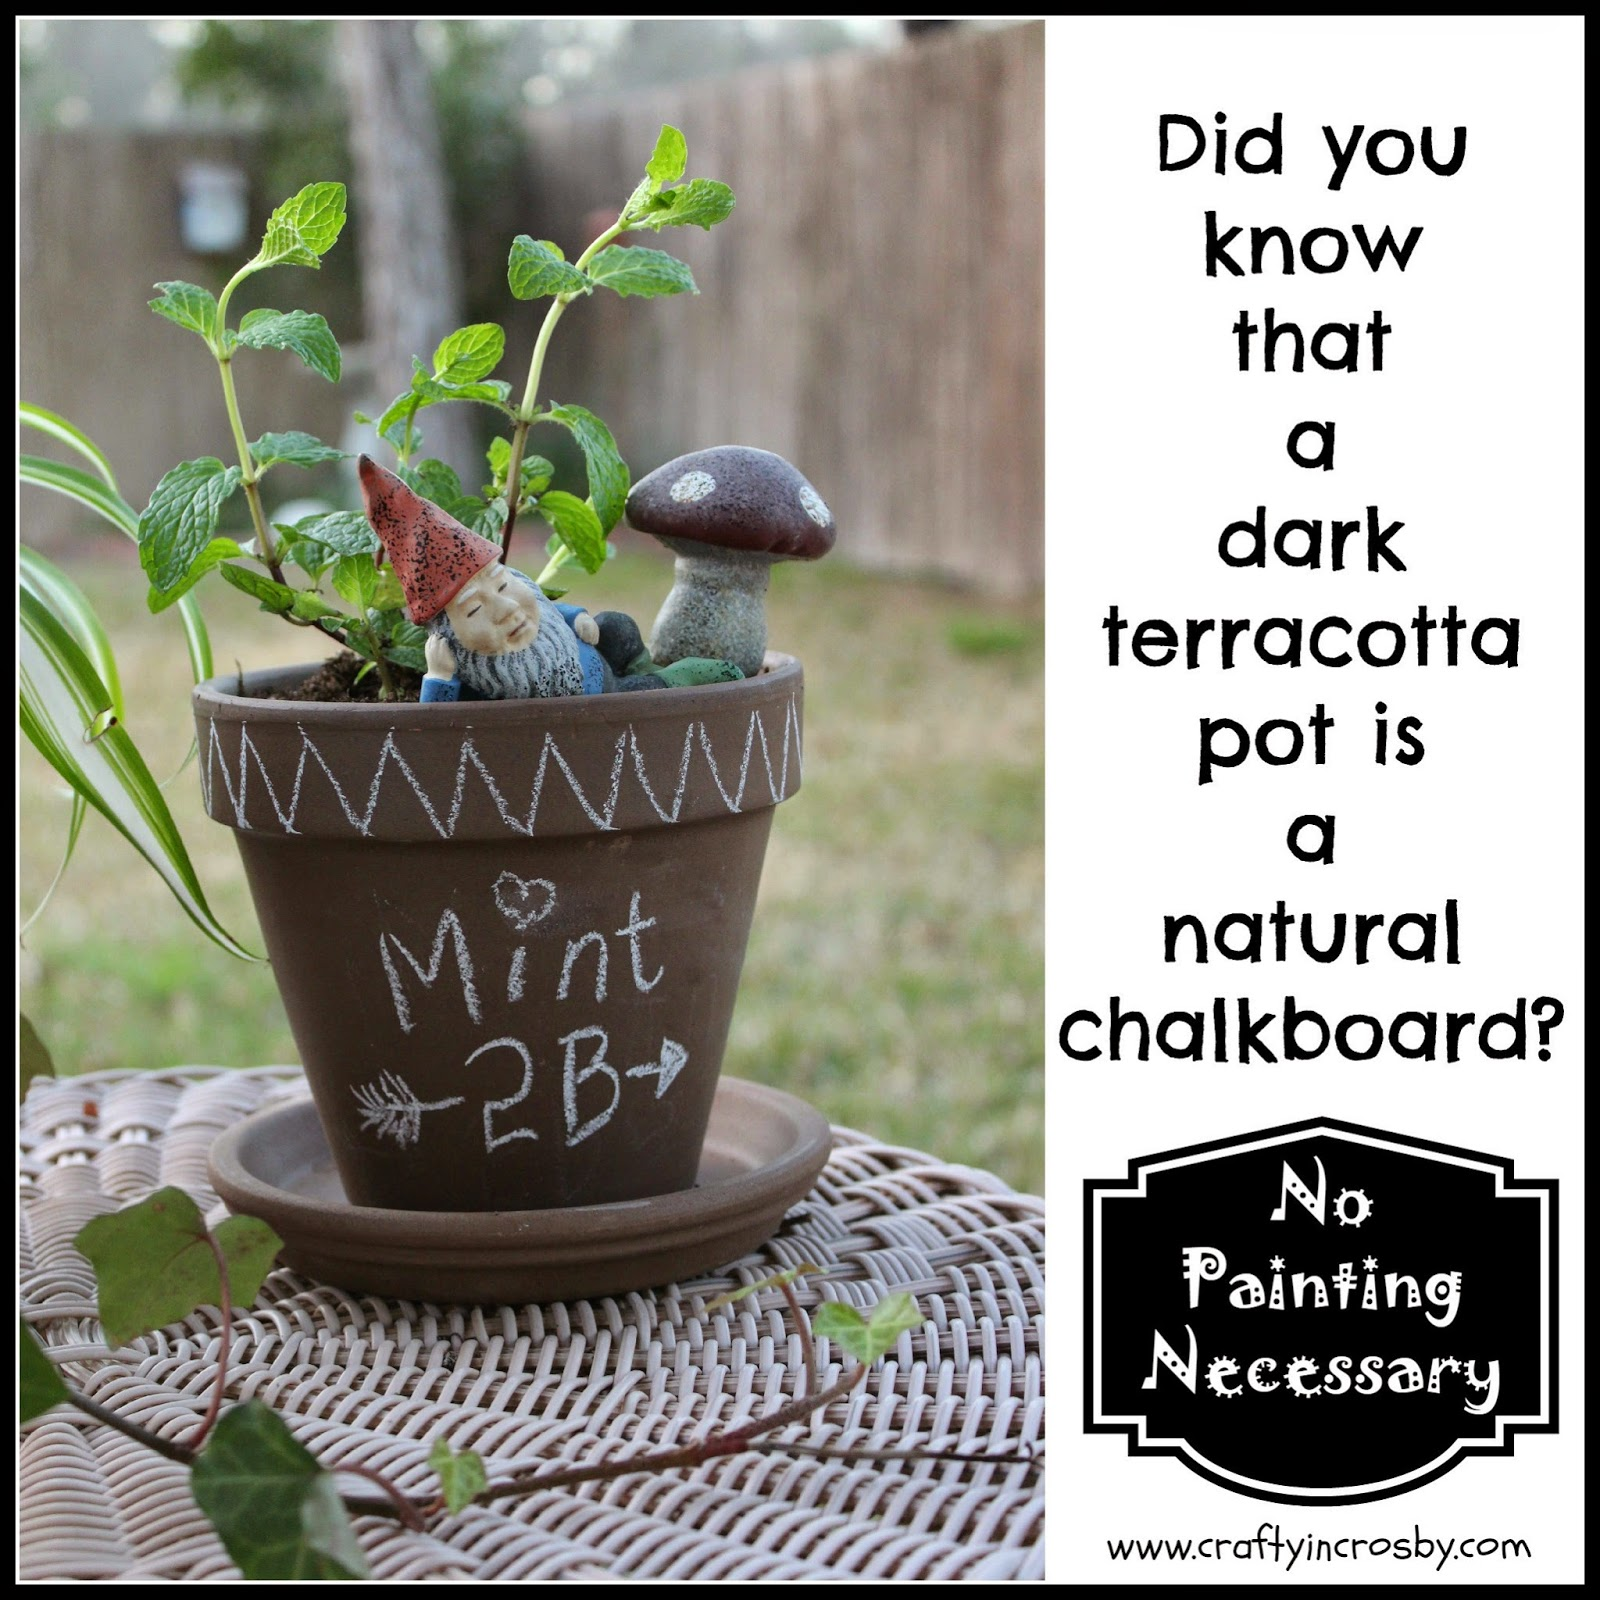 chalkboard, terracotta pot, no paint chalkboard